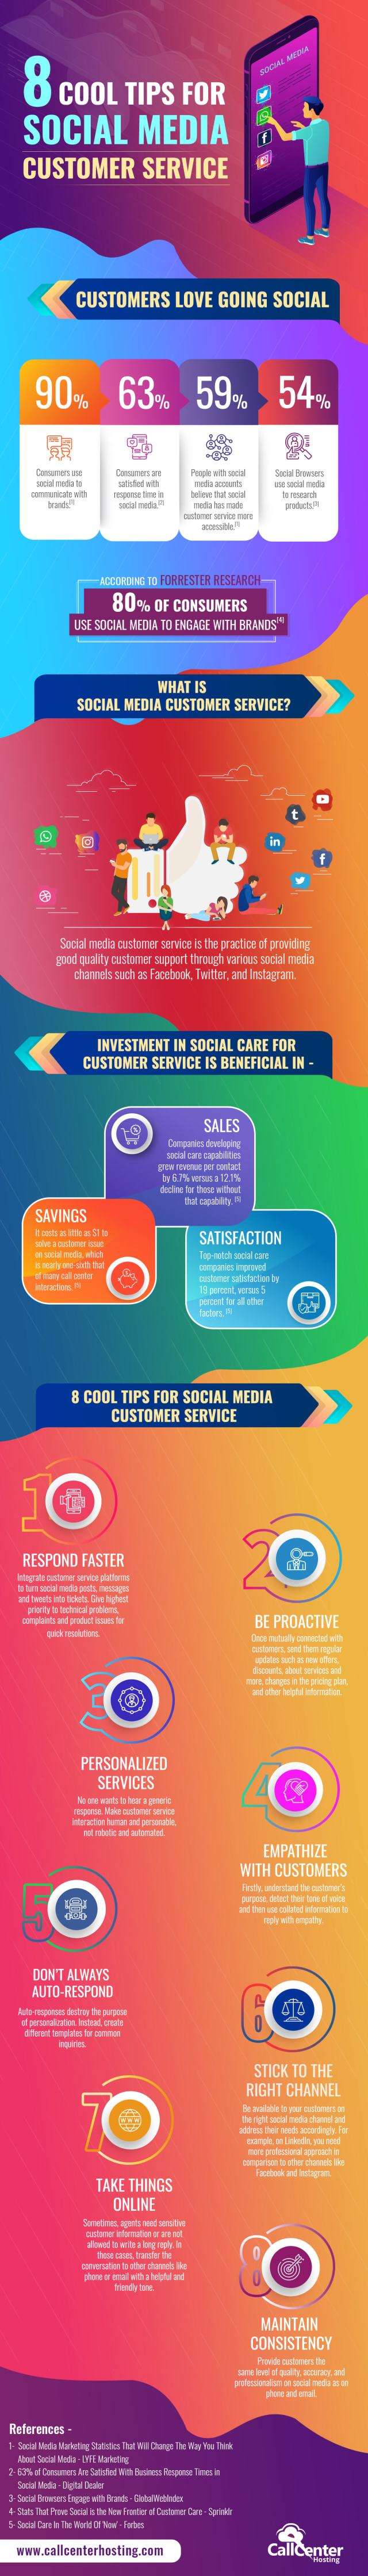 Infographic lists social customer care tips